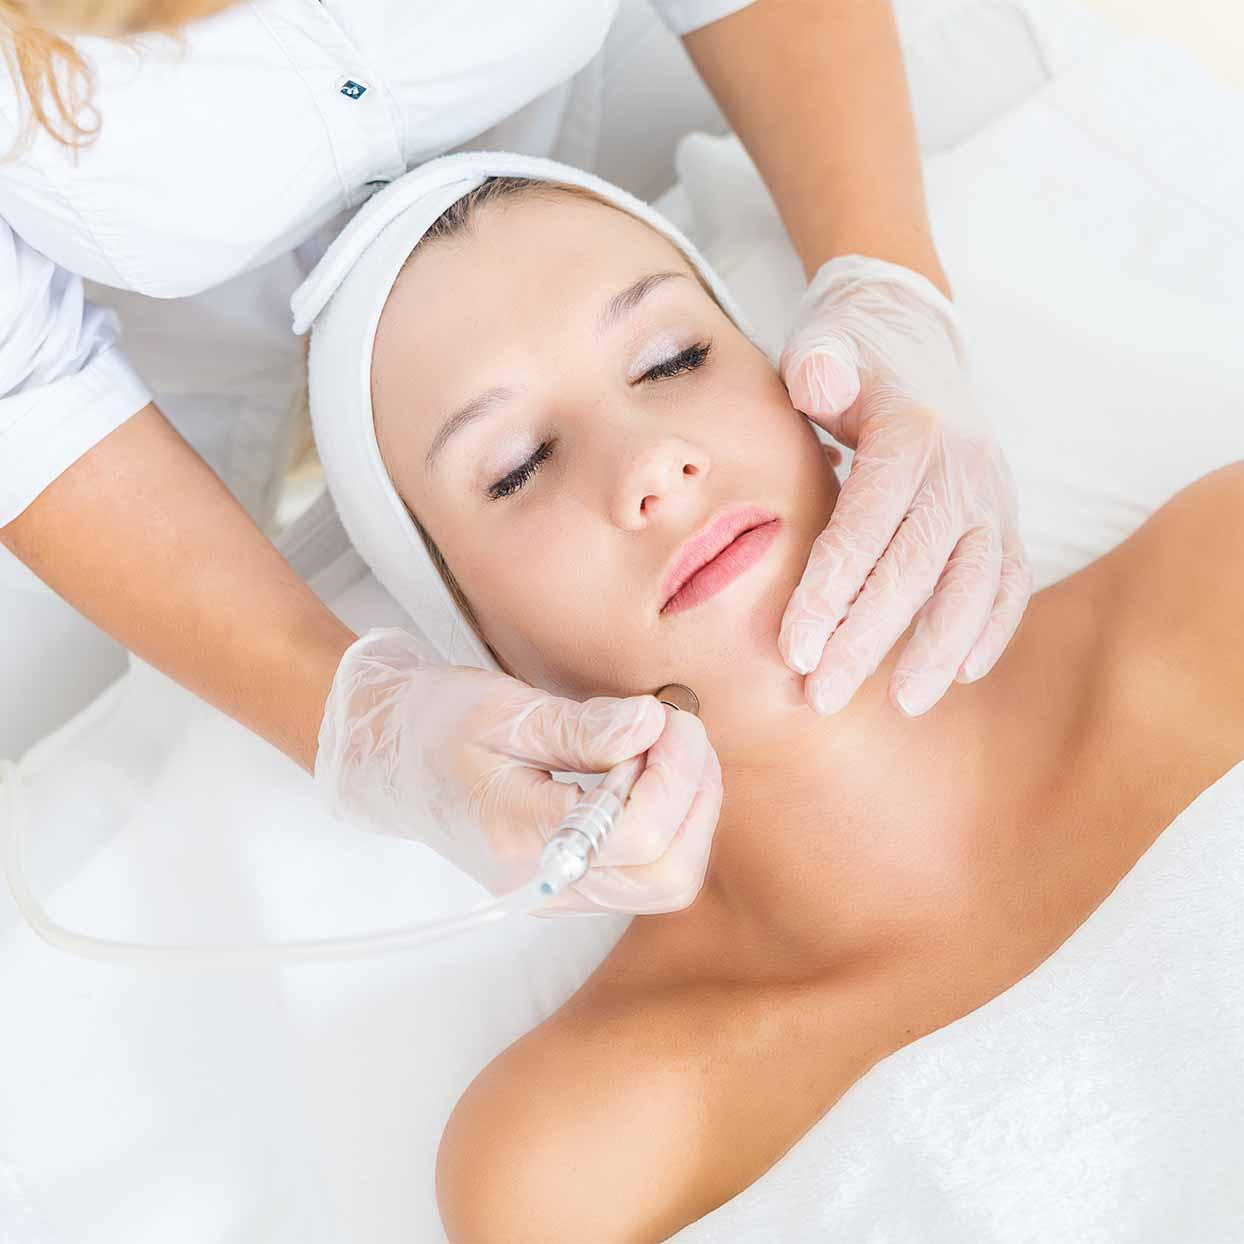 microdermabrasion explainer tout